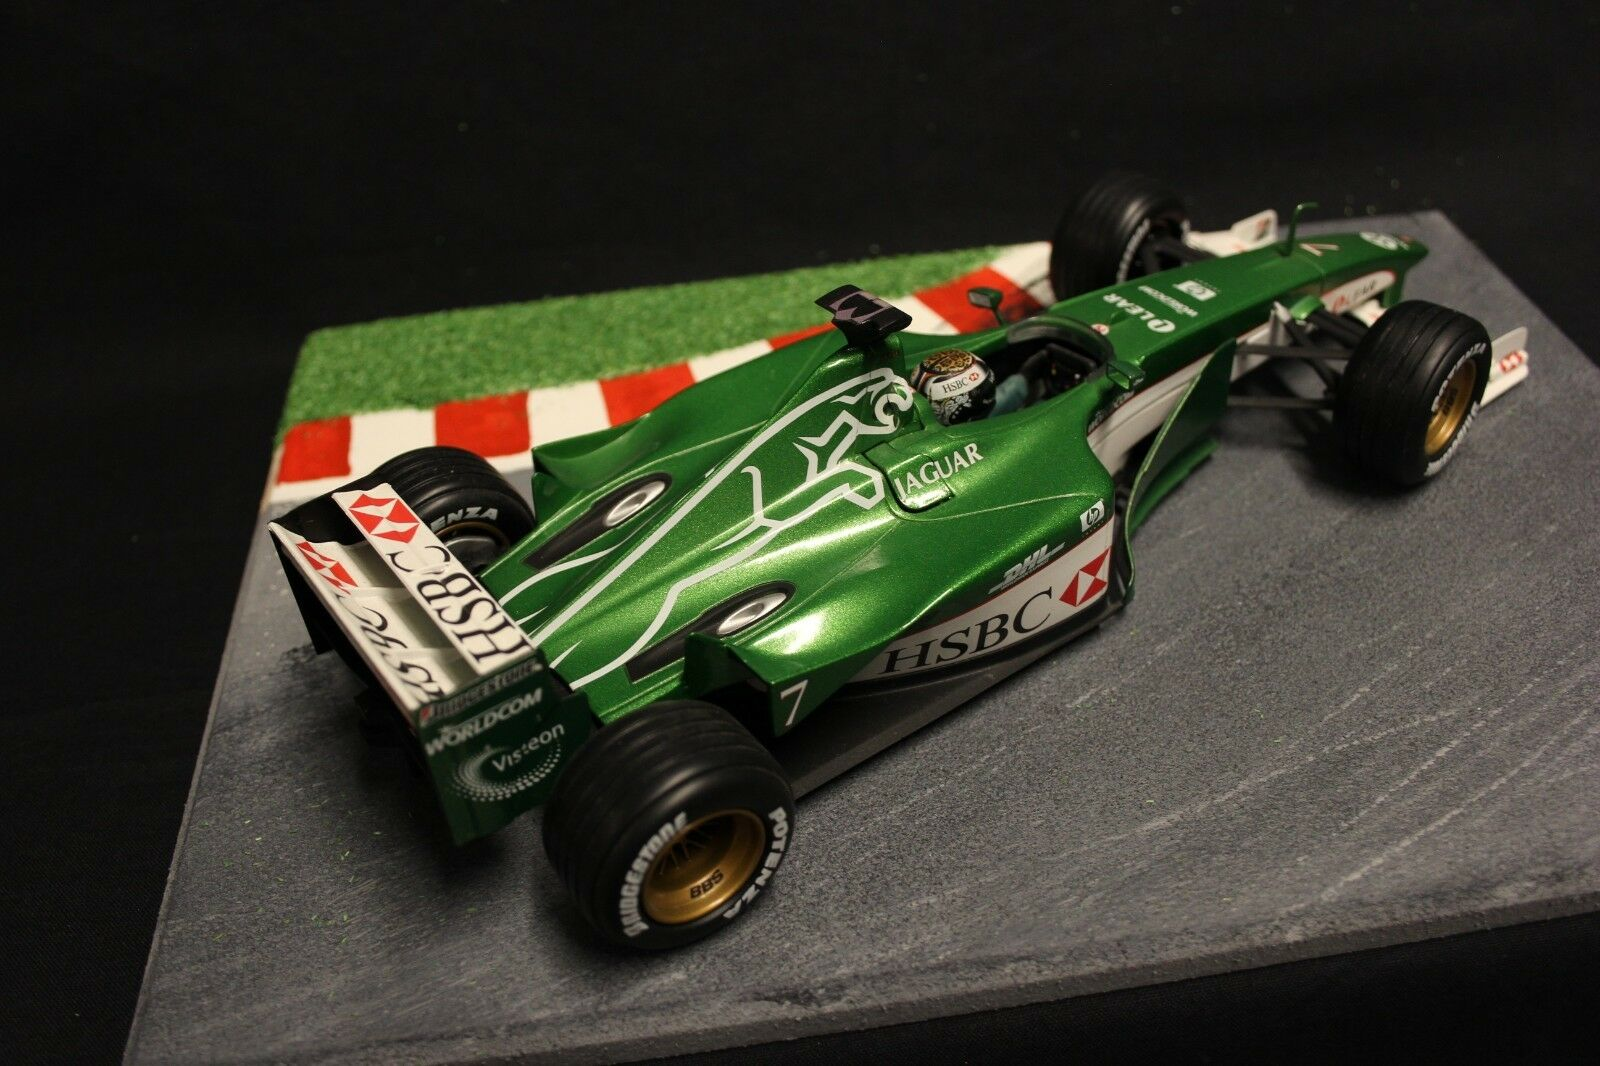 Hot Wheels Jaguar Racing R1 2000 1 1 1 18 Eddie Irvine (GBR) (F1NB) 594dcf